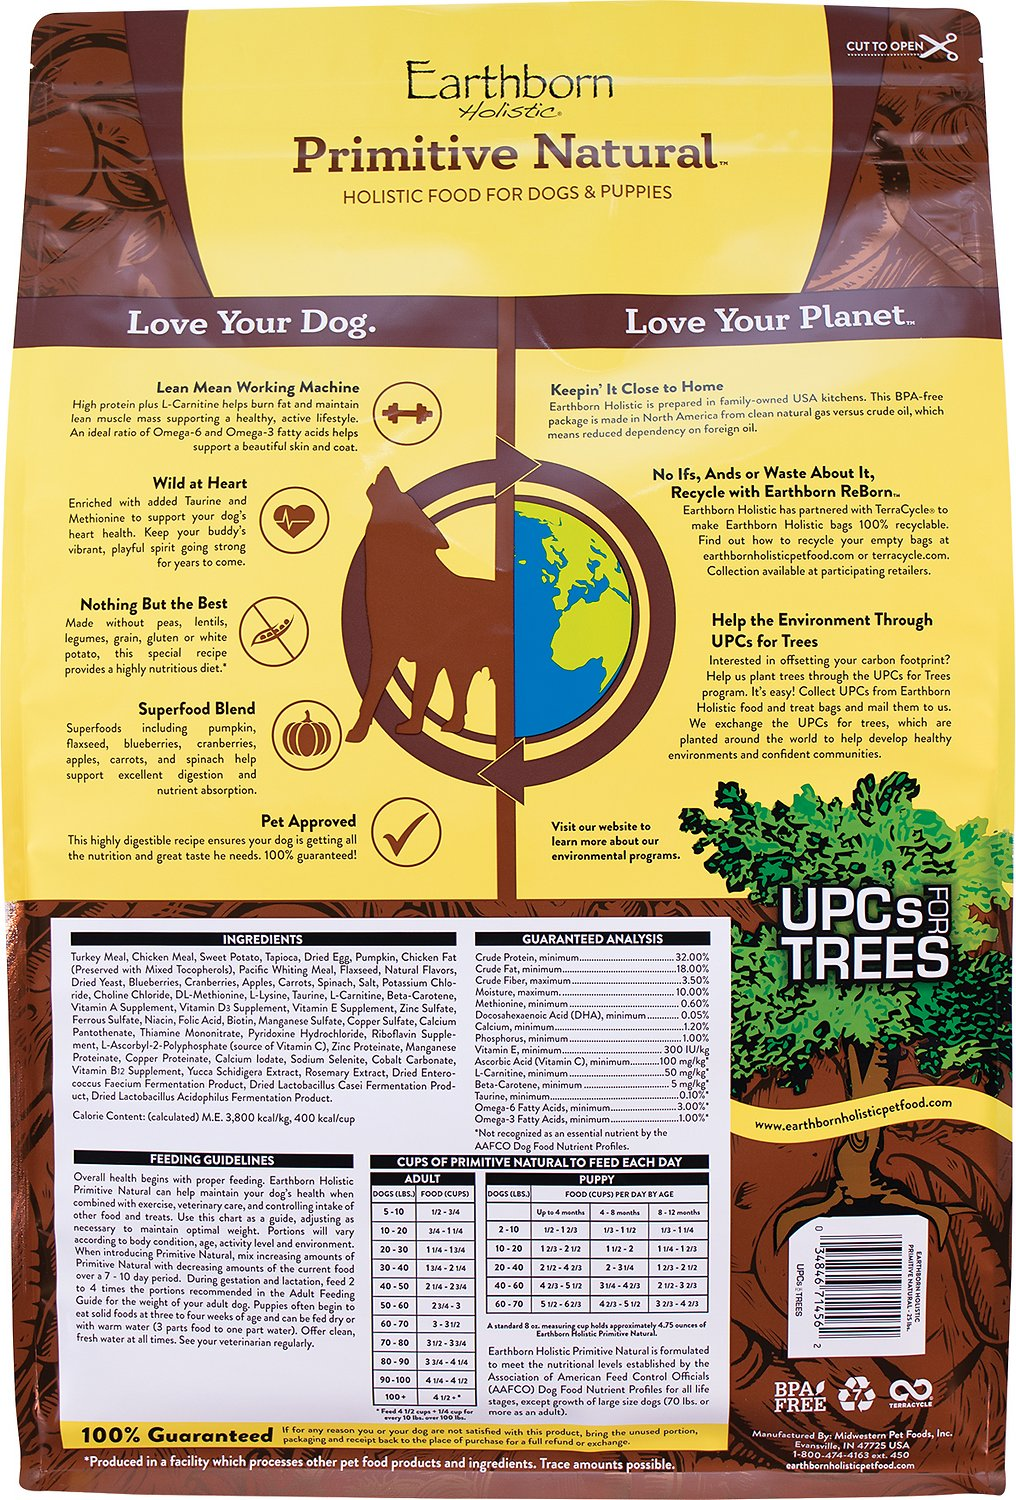 Best Grain Free Dog Food Without Peas And Legumes : grain, without, legumes, EARTHBORN, HOLISTIC, Primitive, Natural, Grain-Free, Food,, 25-lb, Chewy.com